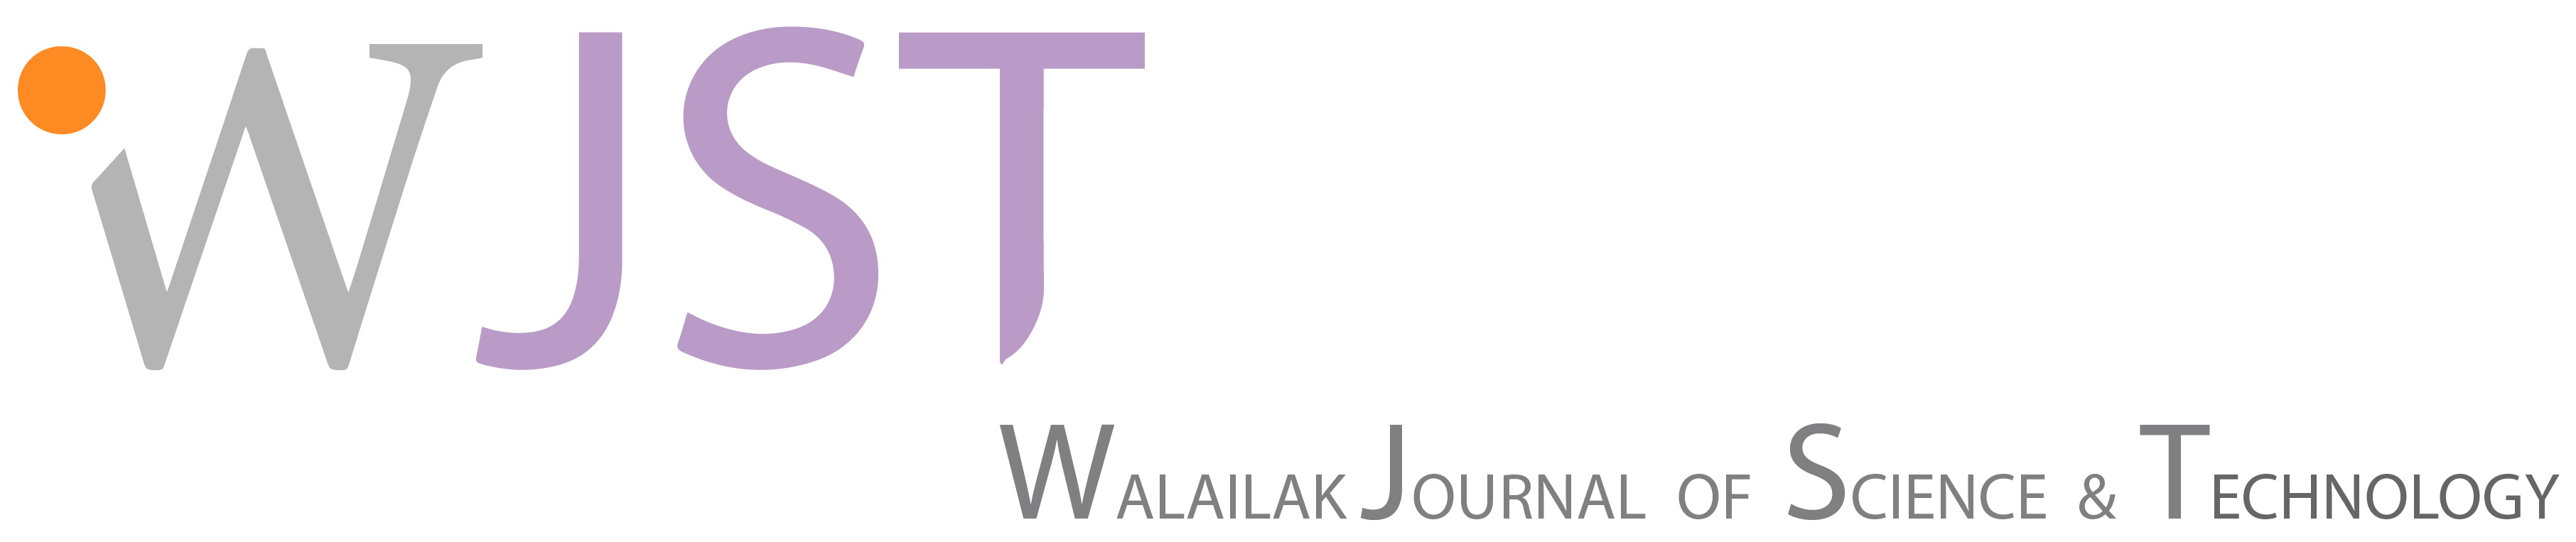 Walailak Journal of Science and Technology